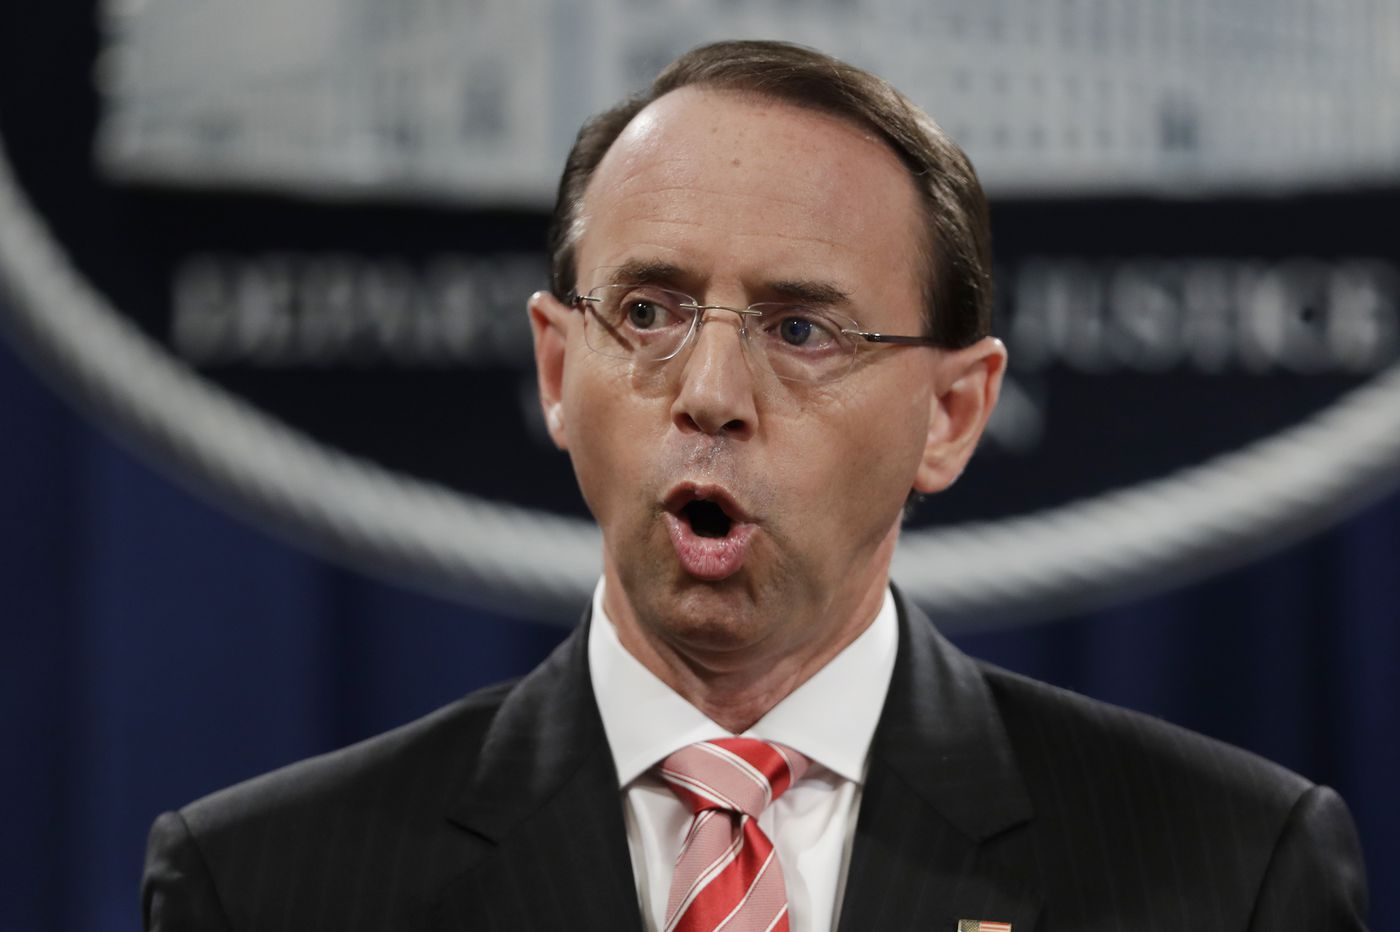 Deputy Attorney General Rosenstein expected to leave Justice Department in weeks